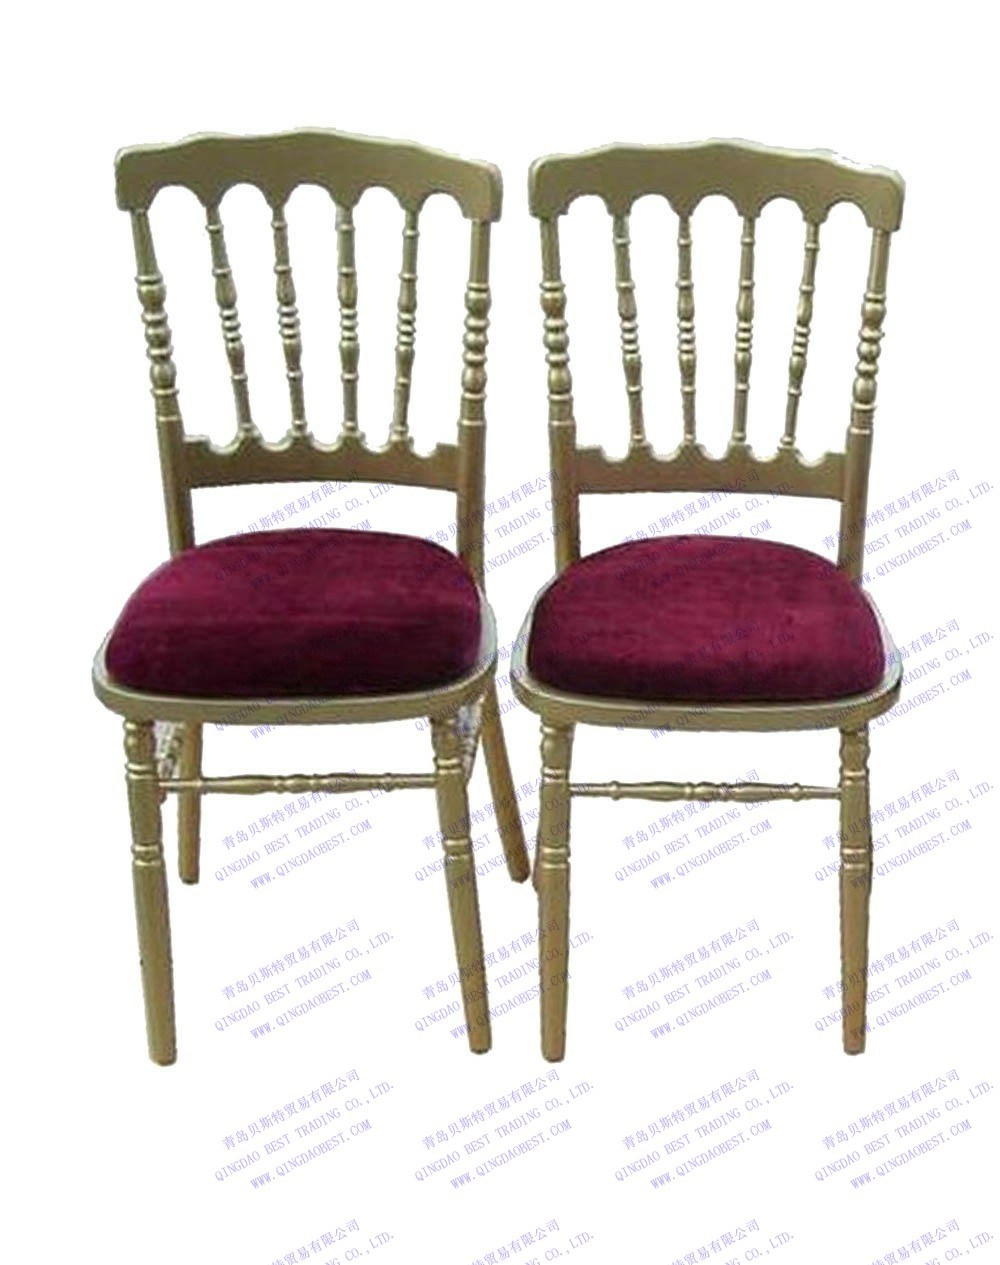 China Gold Wedding Napoleon Chair With Cushion China  : Gold Wedding Napoleon Chair With Cushion from qdbestfurniture.en.made-in-china.com size 1000 x 1265 jpeg 147kB